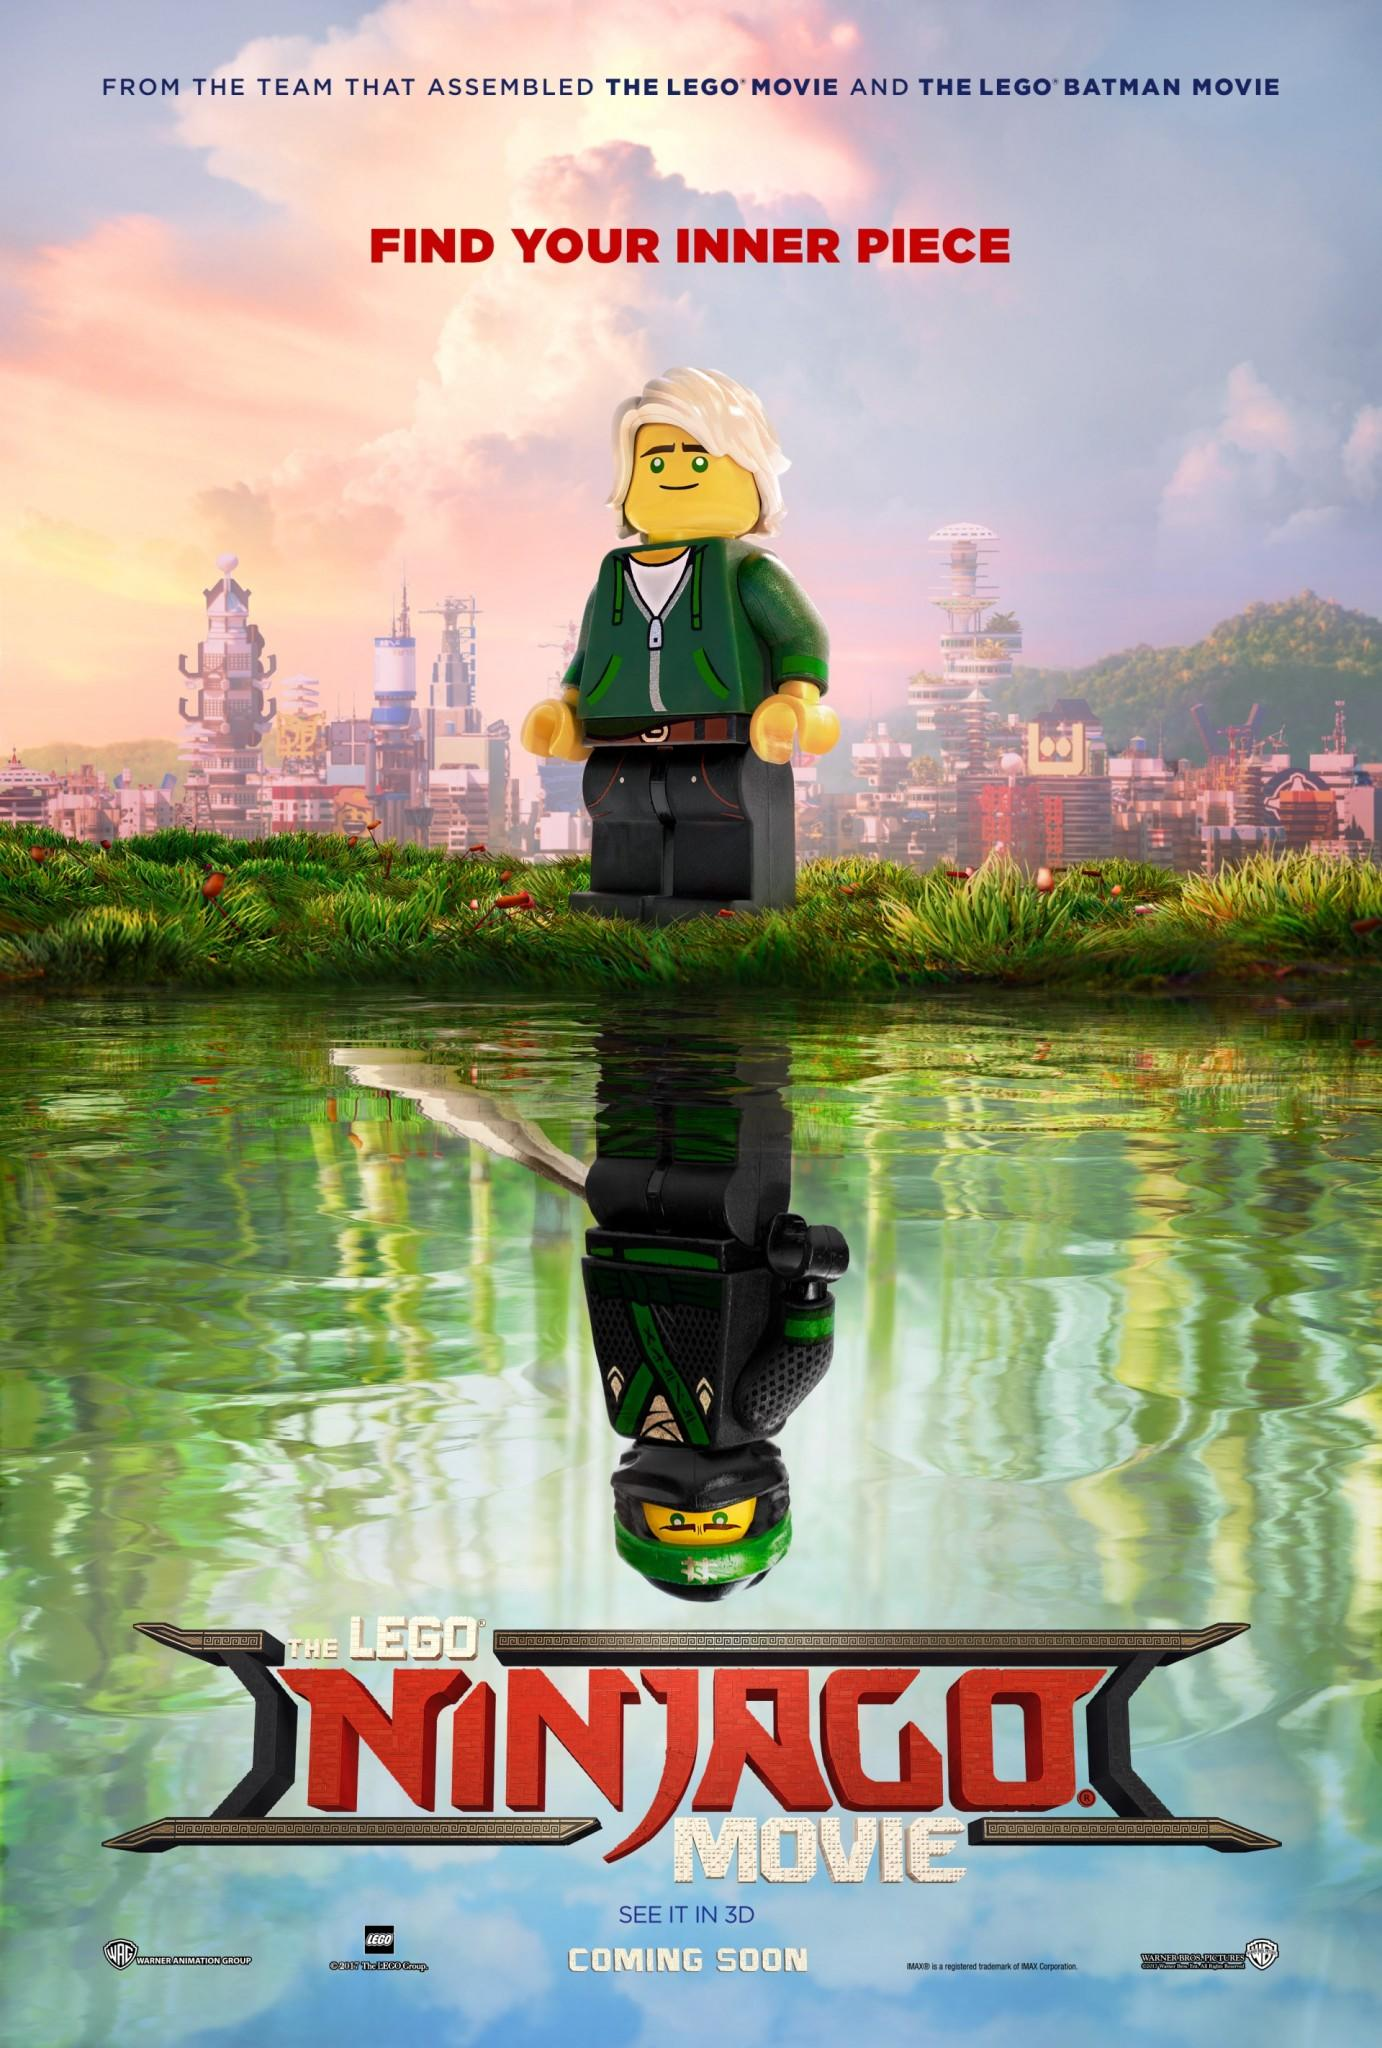 The LEGO Ninjago Movie - first poster (Credit: Warner Bros.)